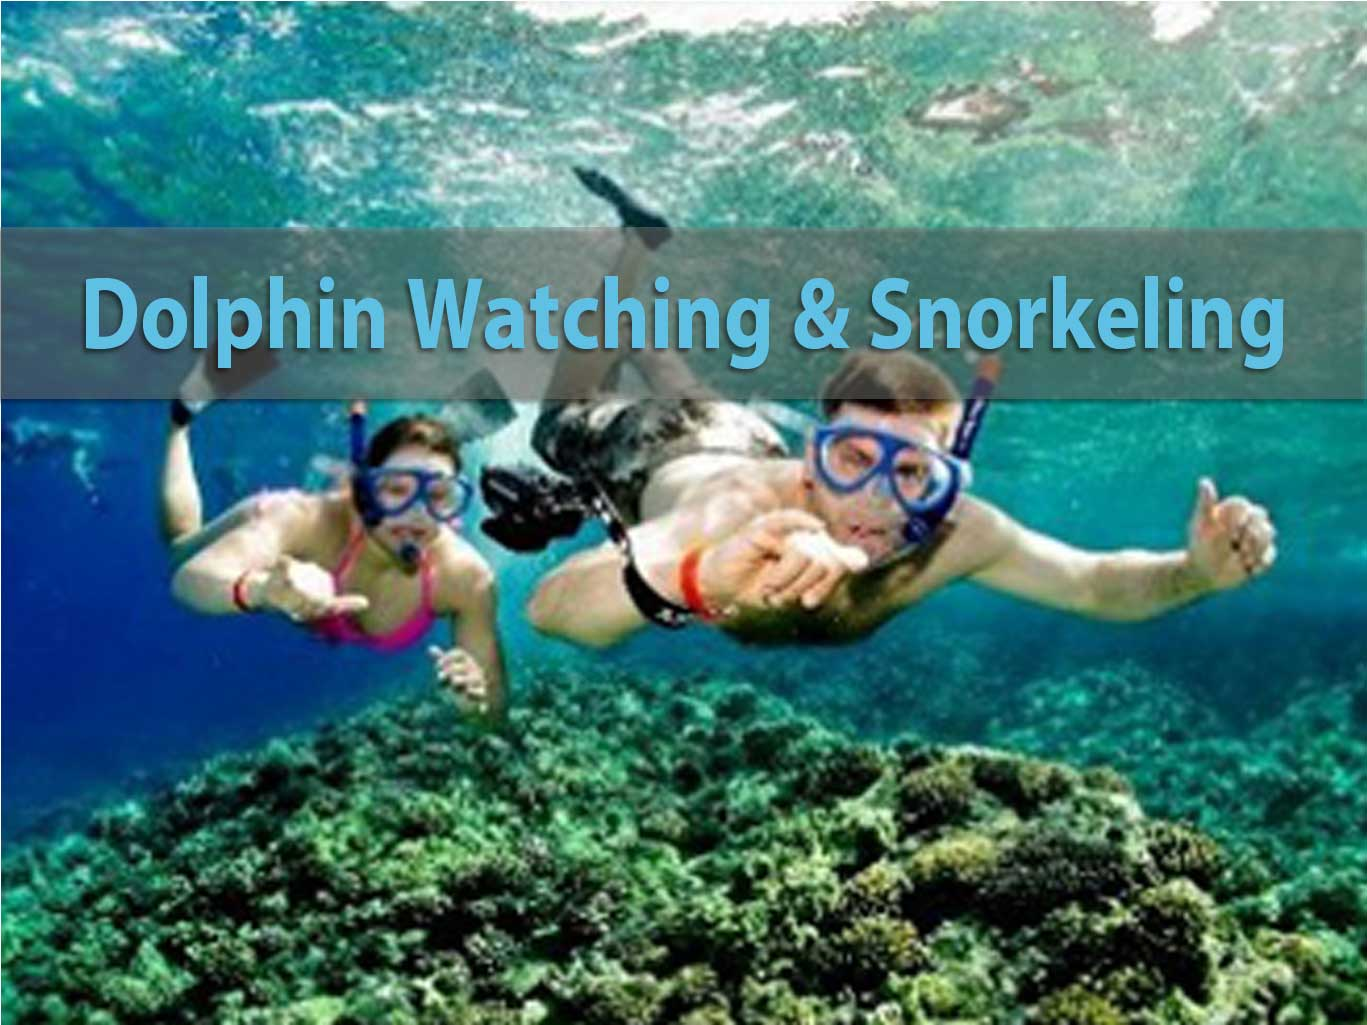 Dolphin-watching-&-snorkeling-trip